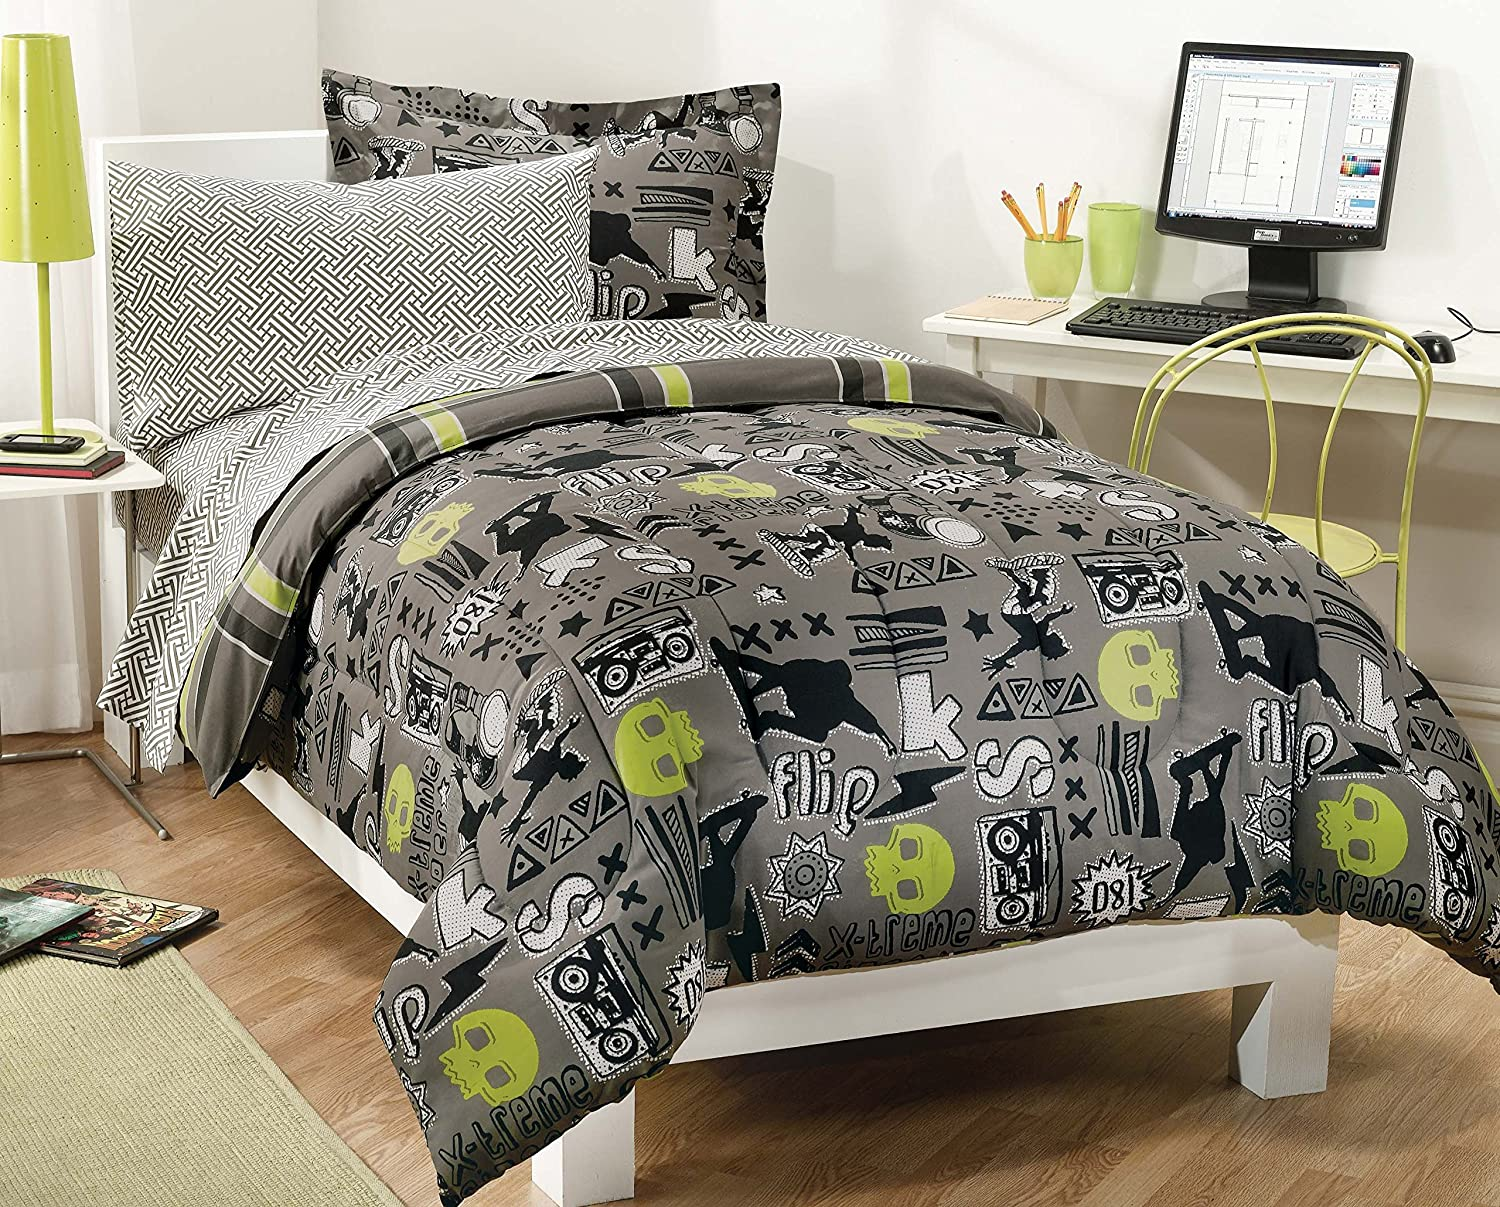 Amazon My Room Extreme Skateboarding Boys Comforter Set With 180Tc Sheets Gray Twin Home Kitchen